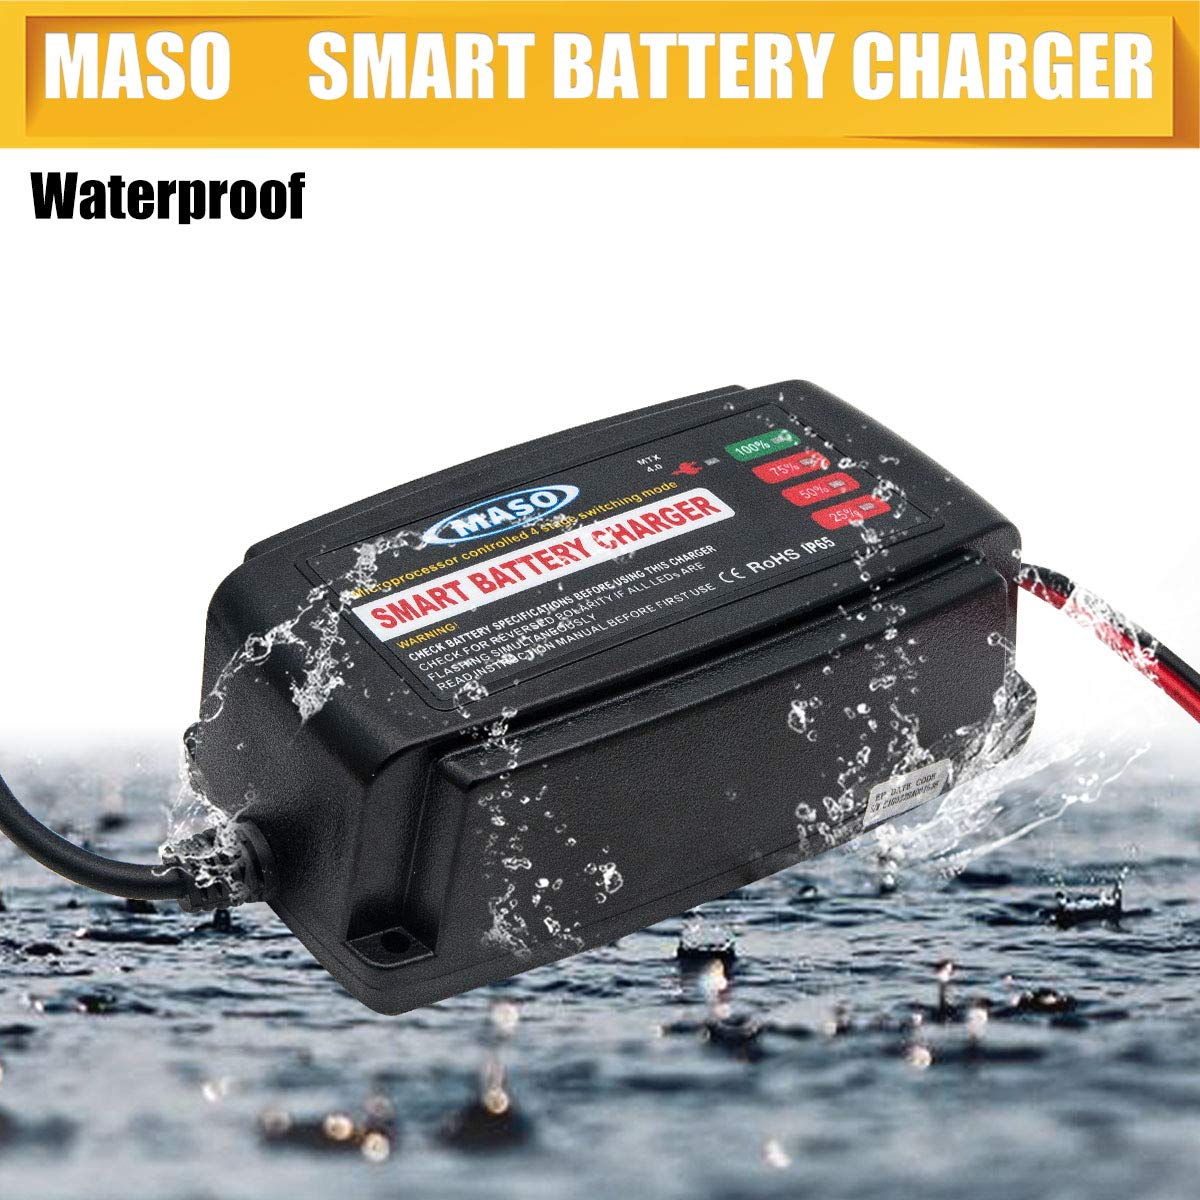 Battery Charging Units Maso 12v 5a Car Smart Charger 12v5a Automotive With Polarity Output Short Circuit Conditioner Lead Acid Motorcycle Boat